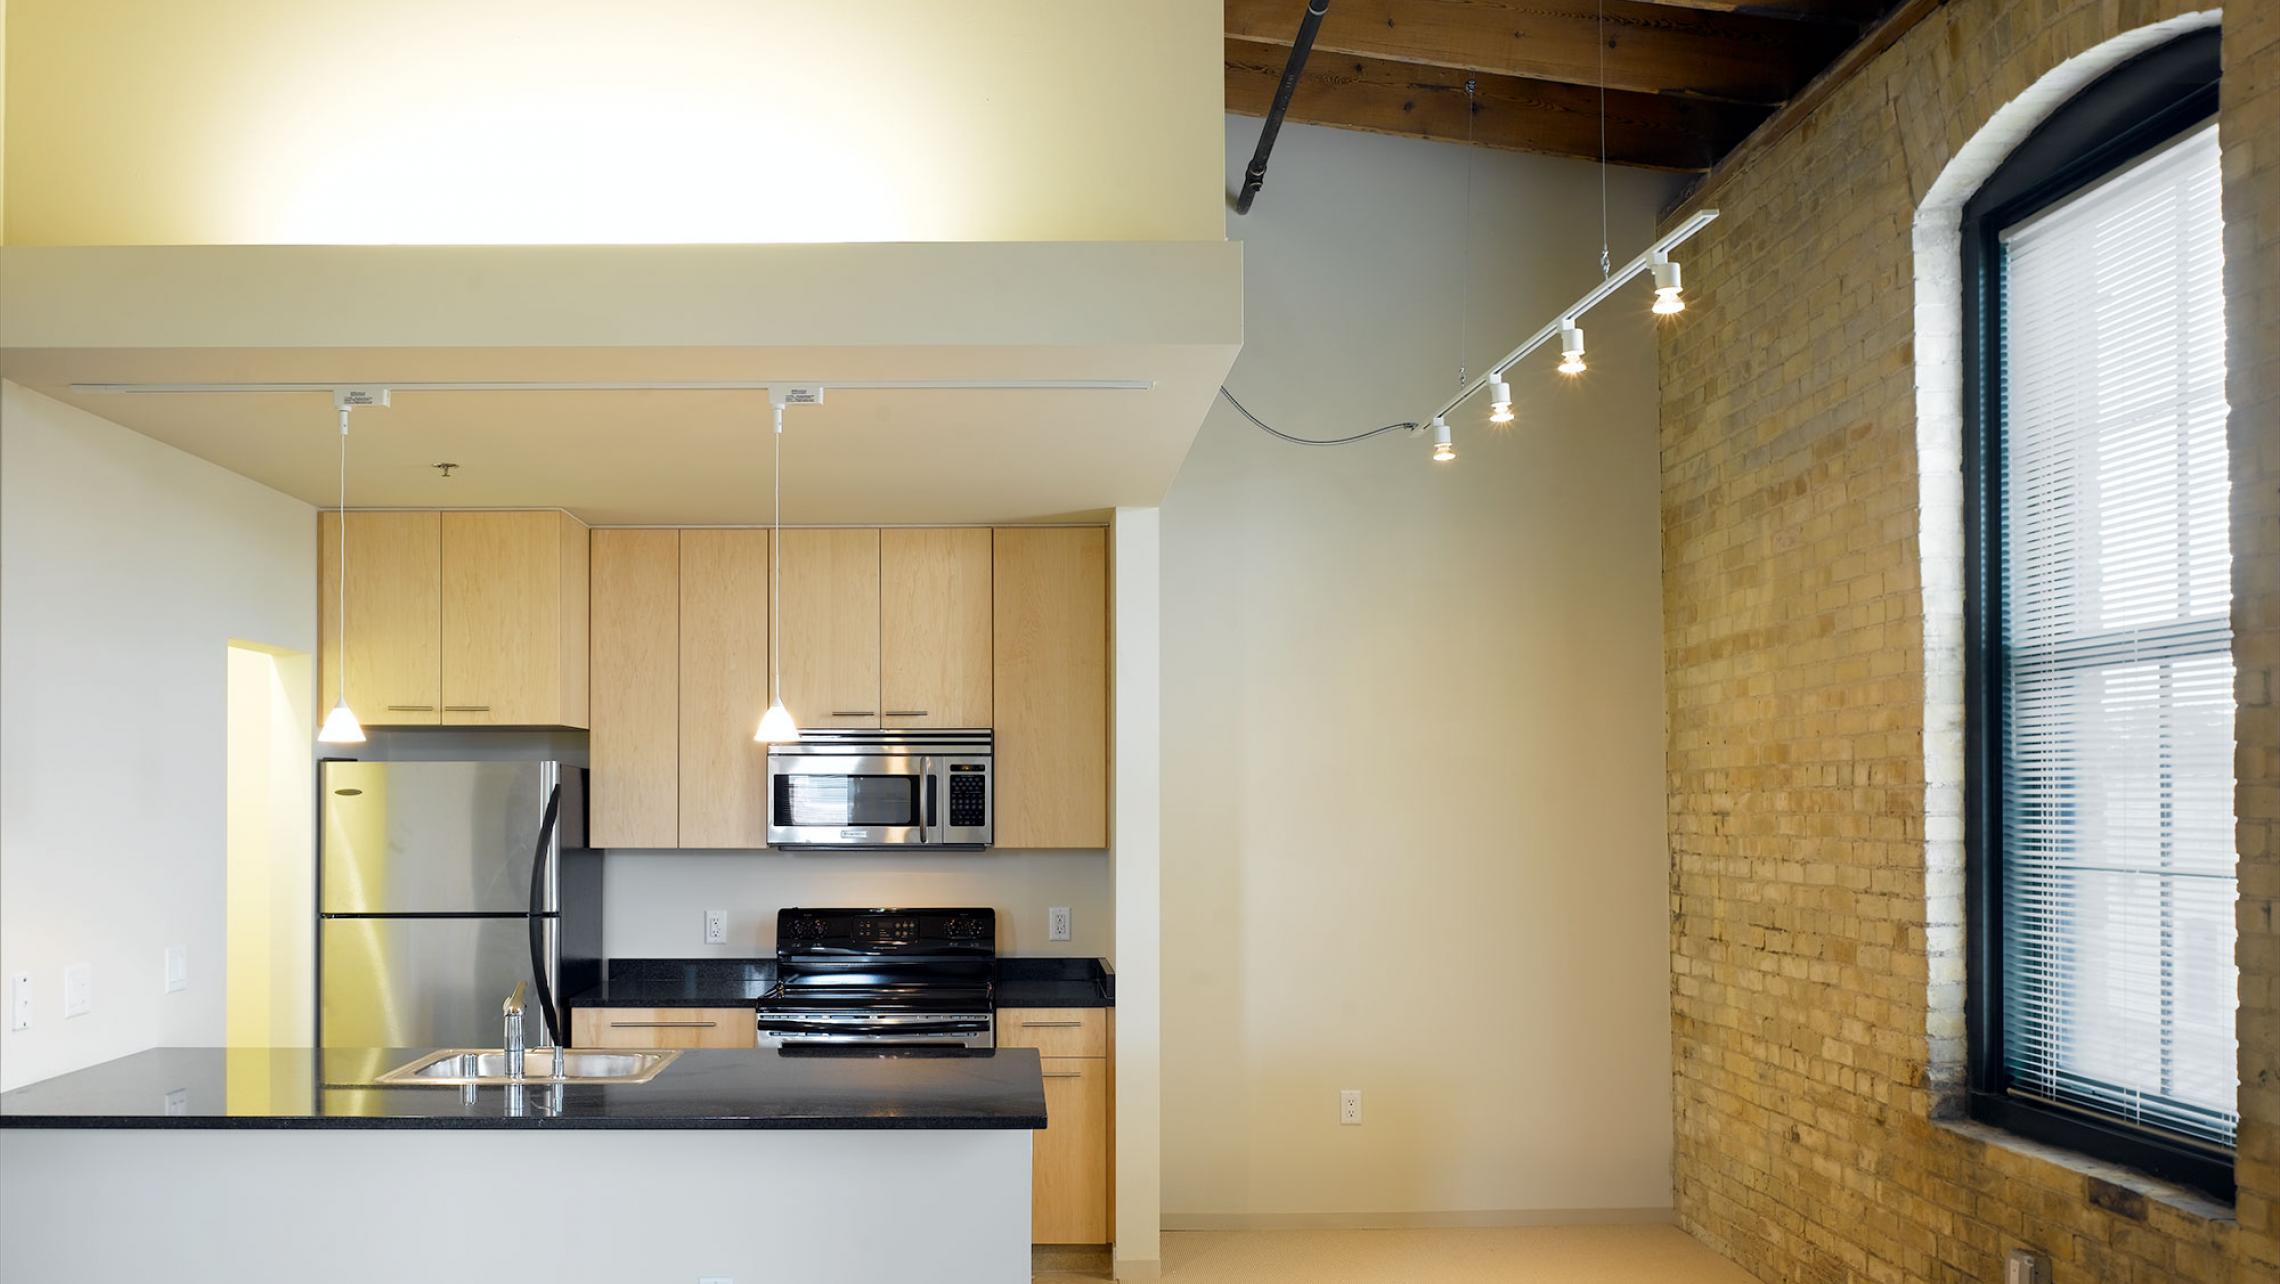 ULI Tobacco Lofts Apartments - Exposed Brick Beams